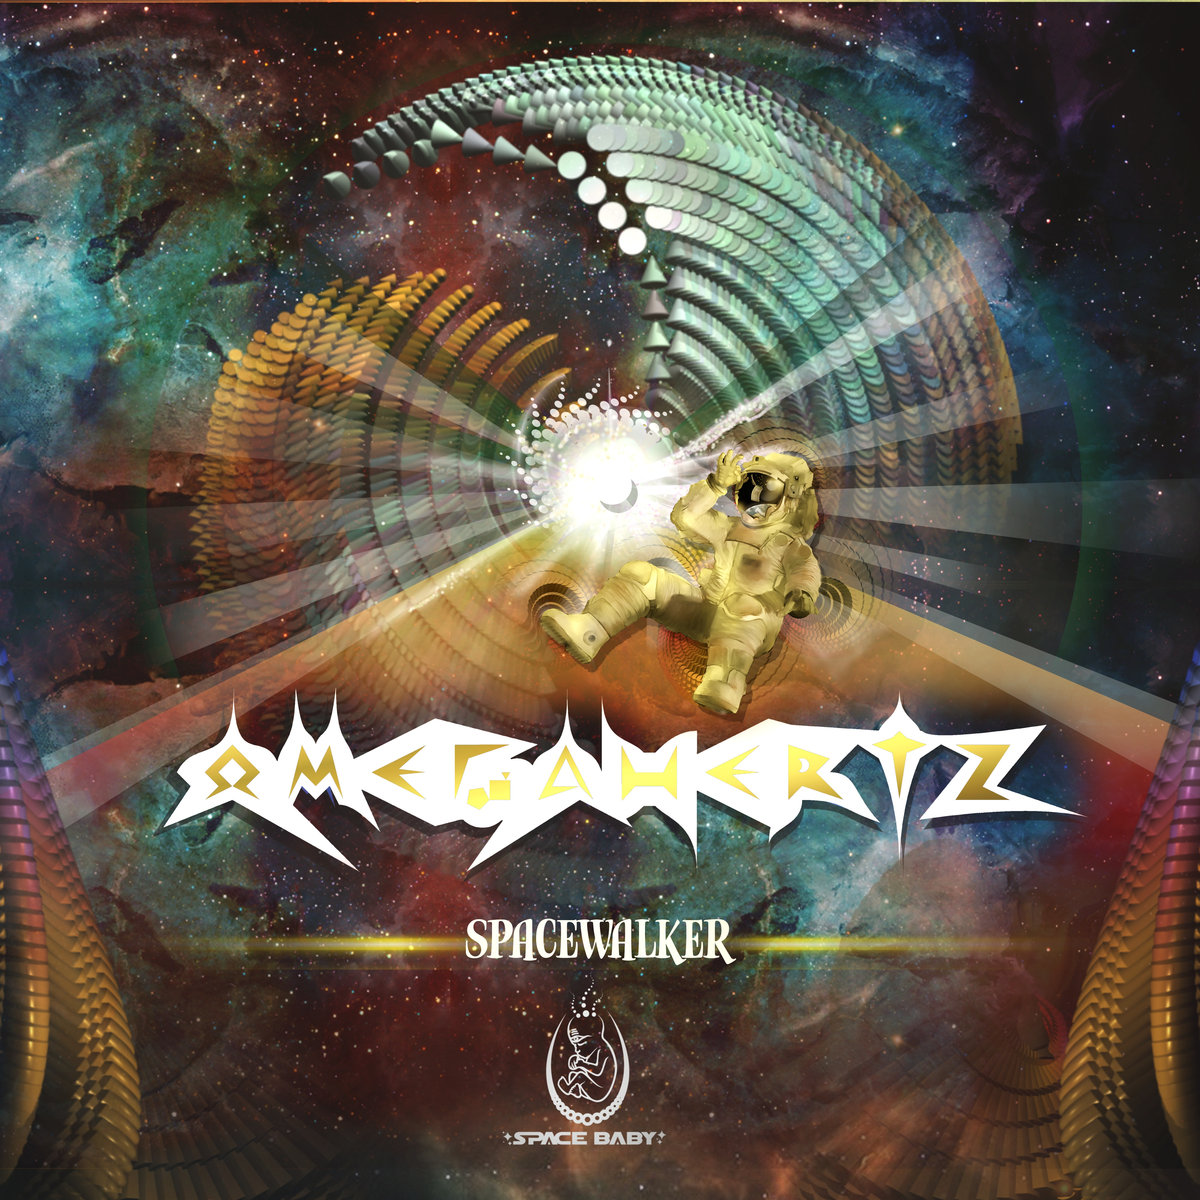 OmegaHertz - Spacewalker @ 'Spacewalker' album (ambient, electronic)